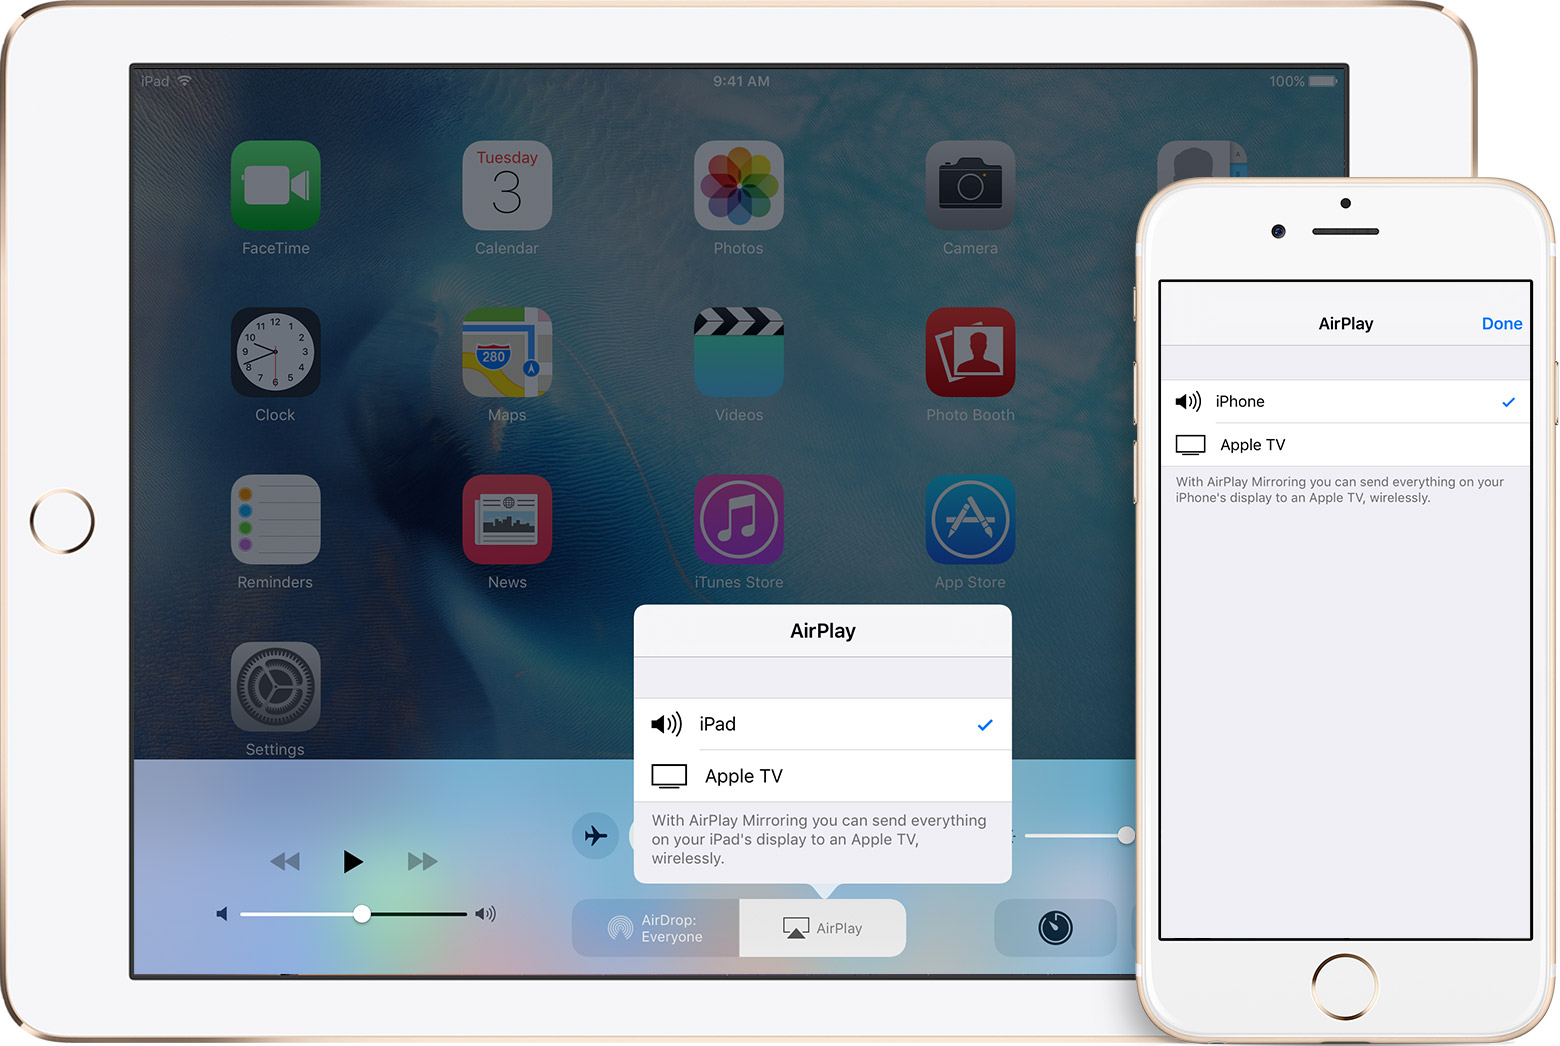 Turn Airplay Off